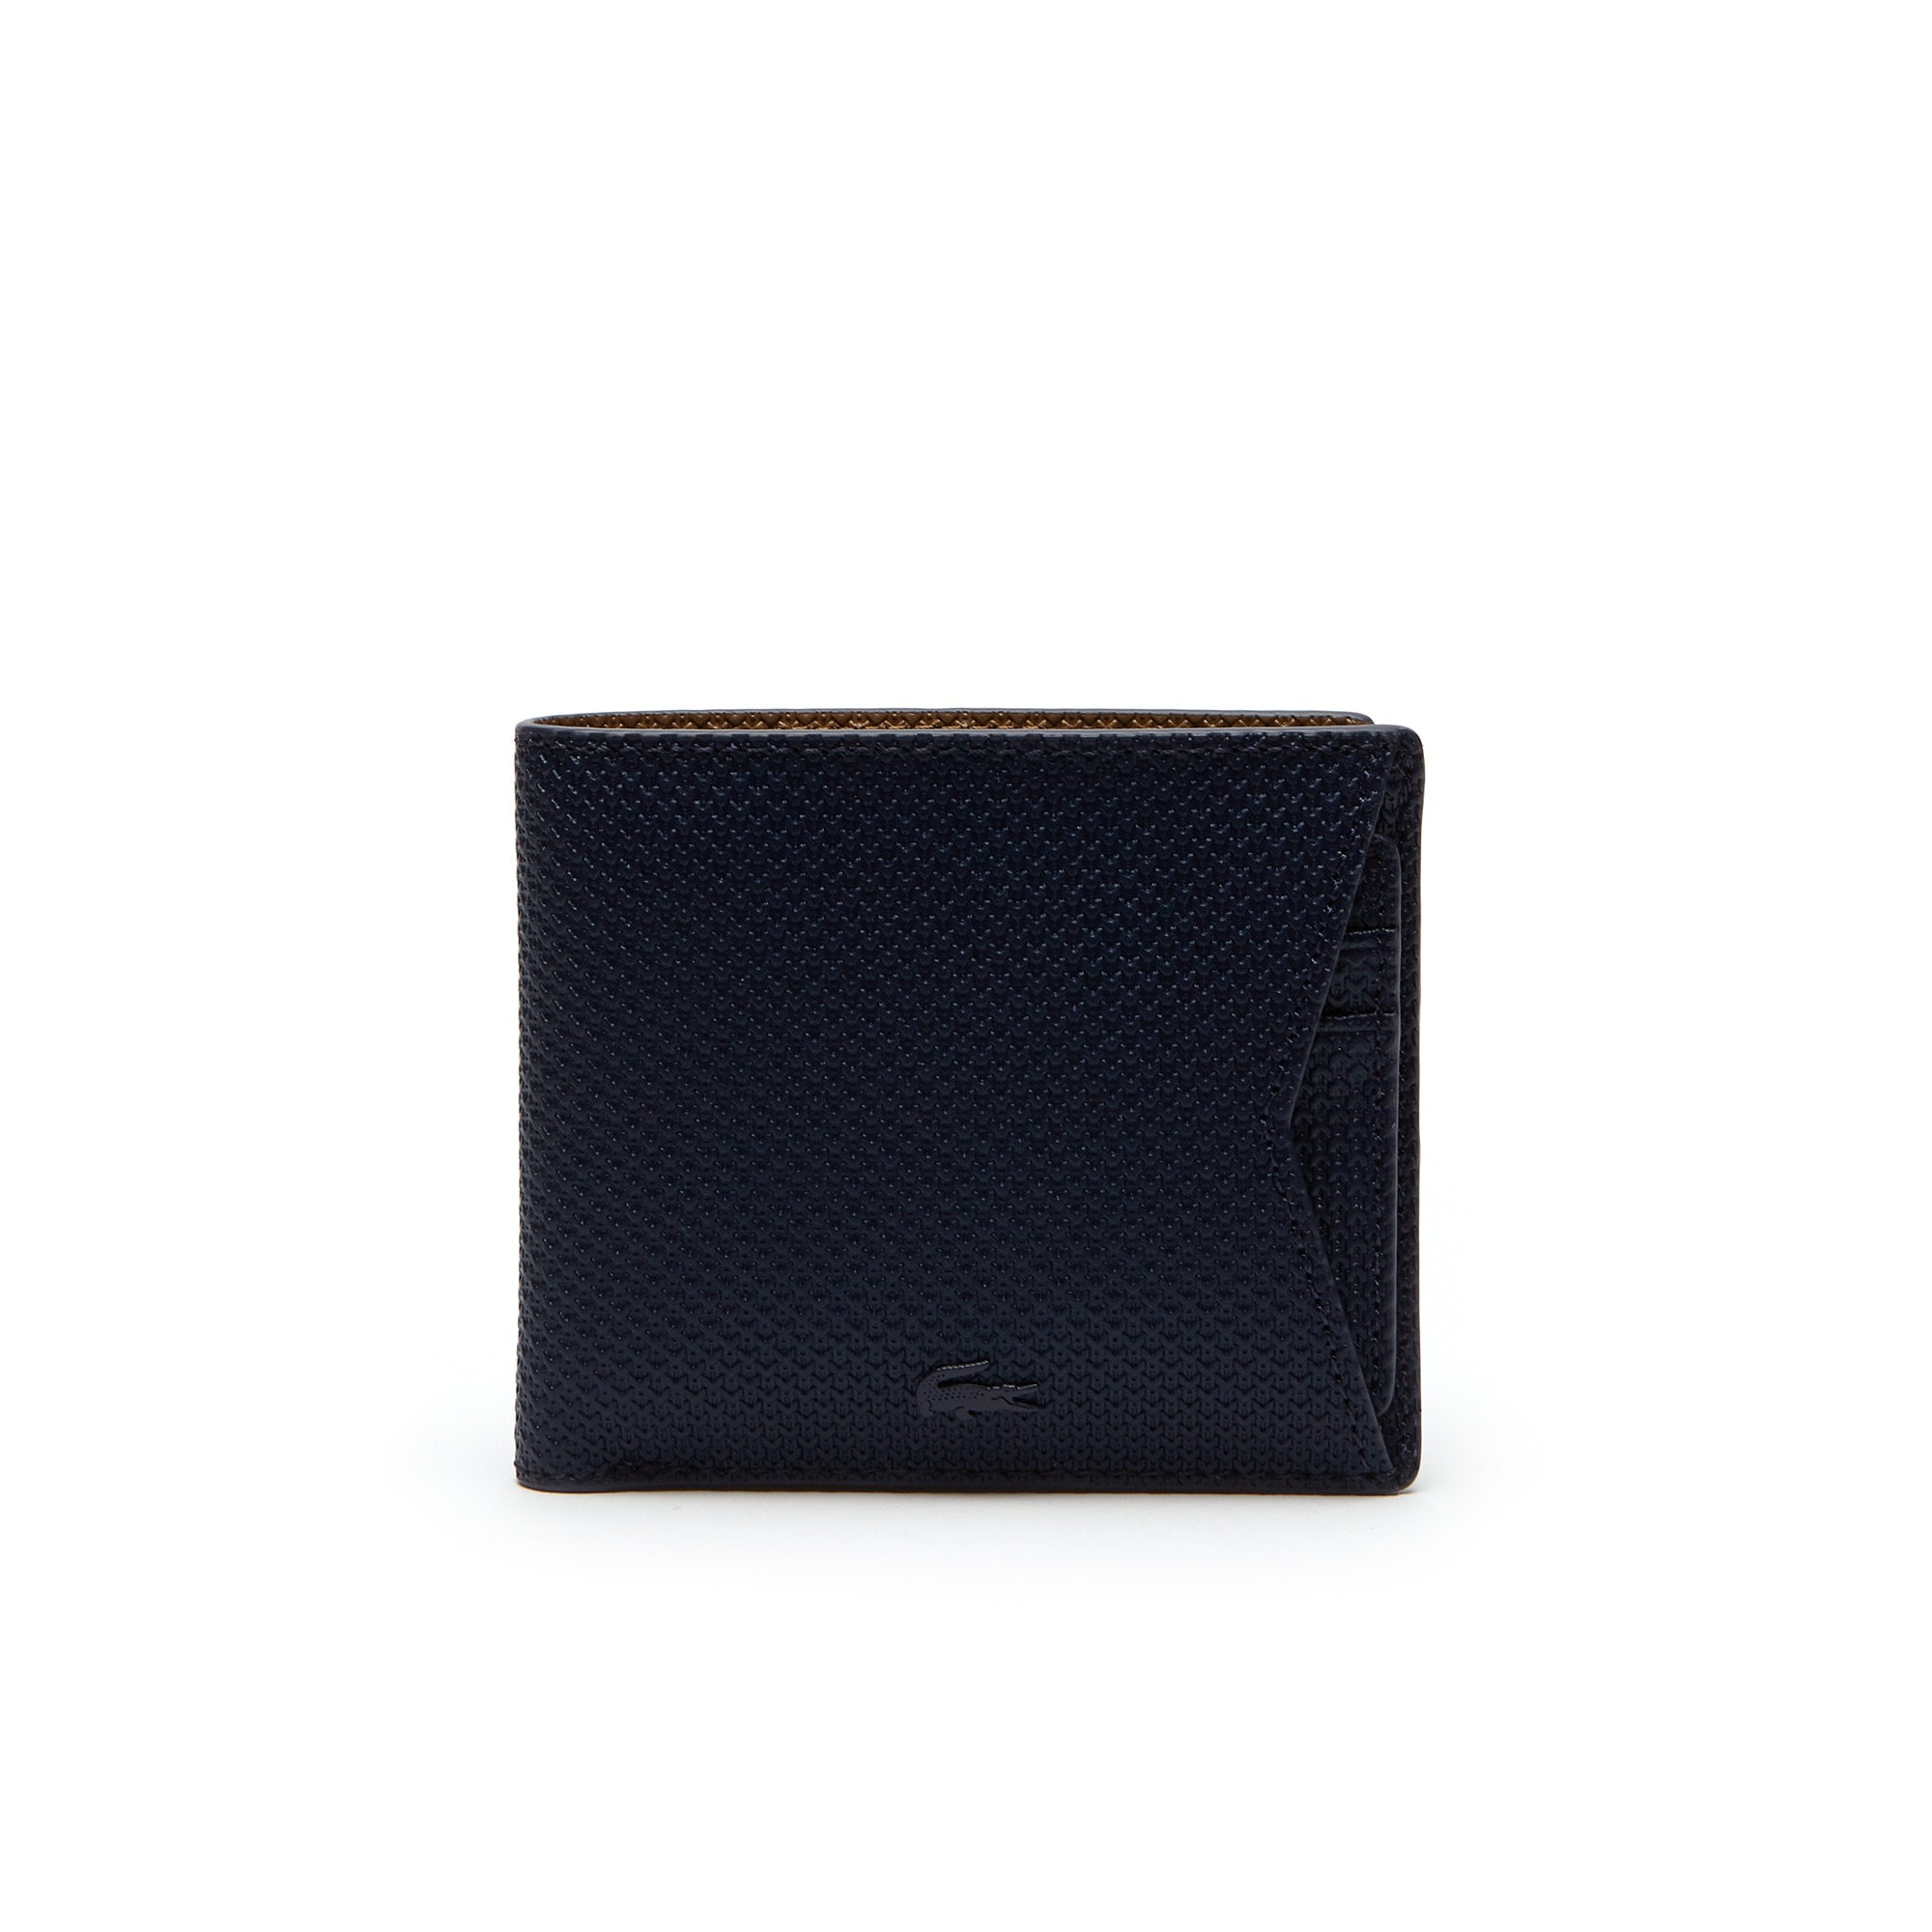 Men's Chantaco Monochrome Coated Leather Wallet With Card Holder by Lacoste